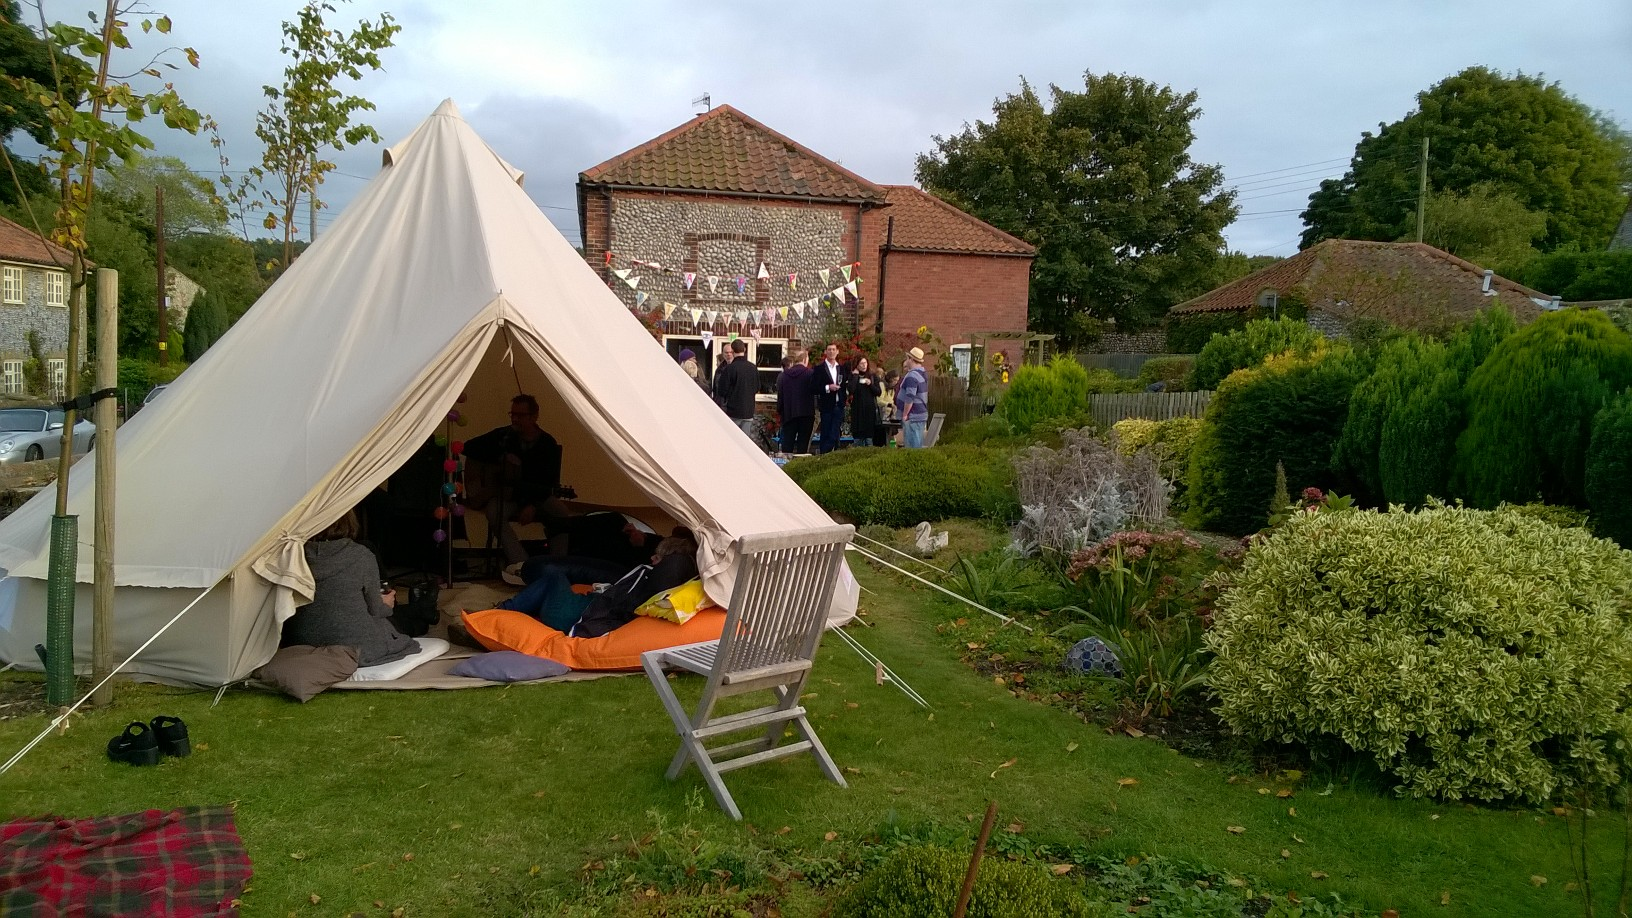 Wonderful Tipi / House Gig!